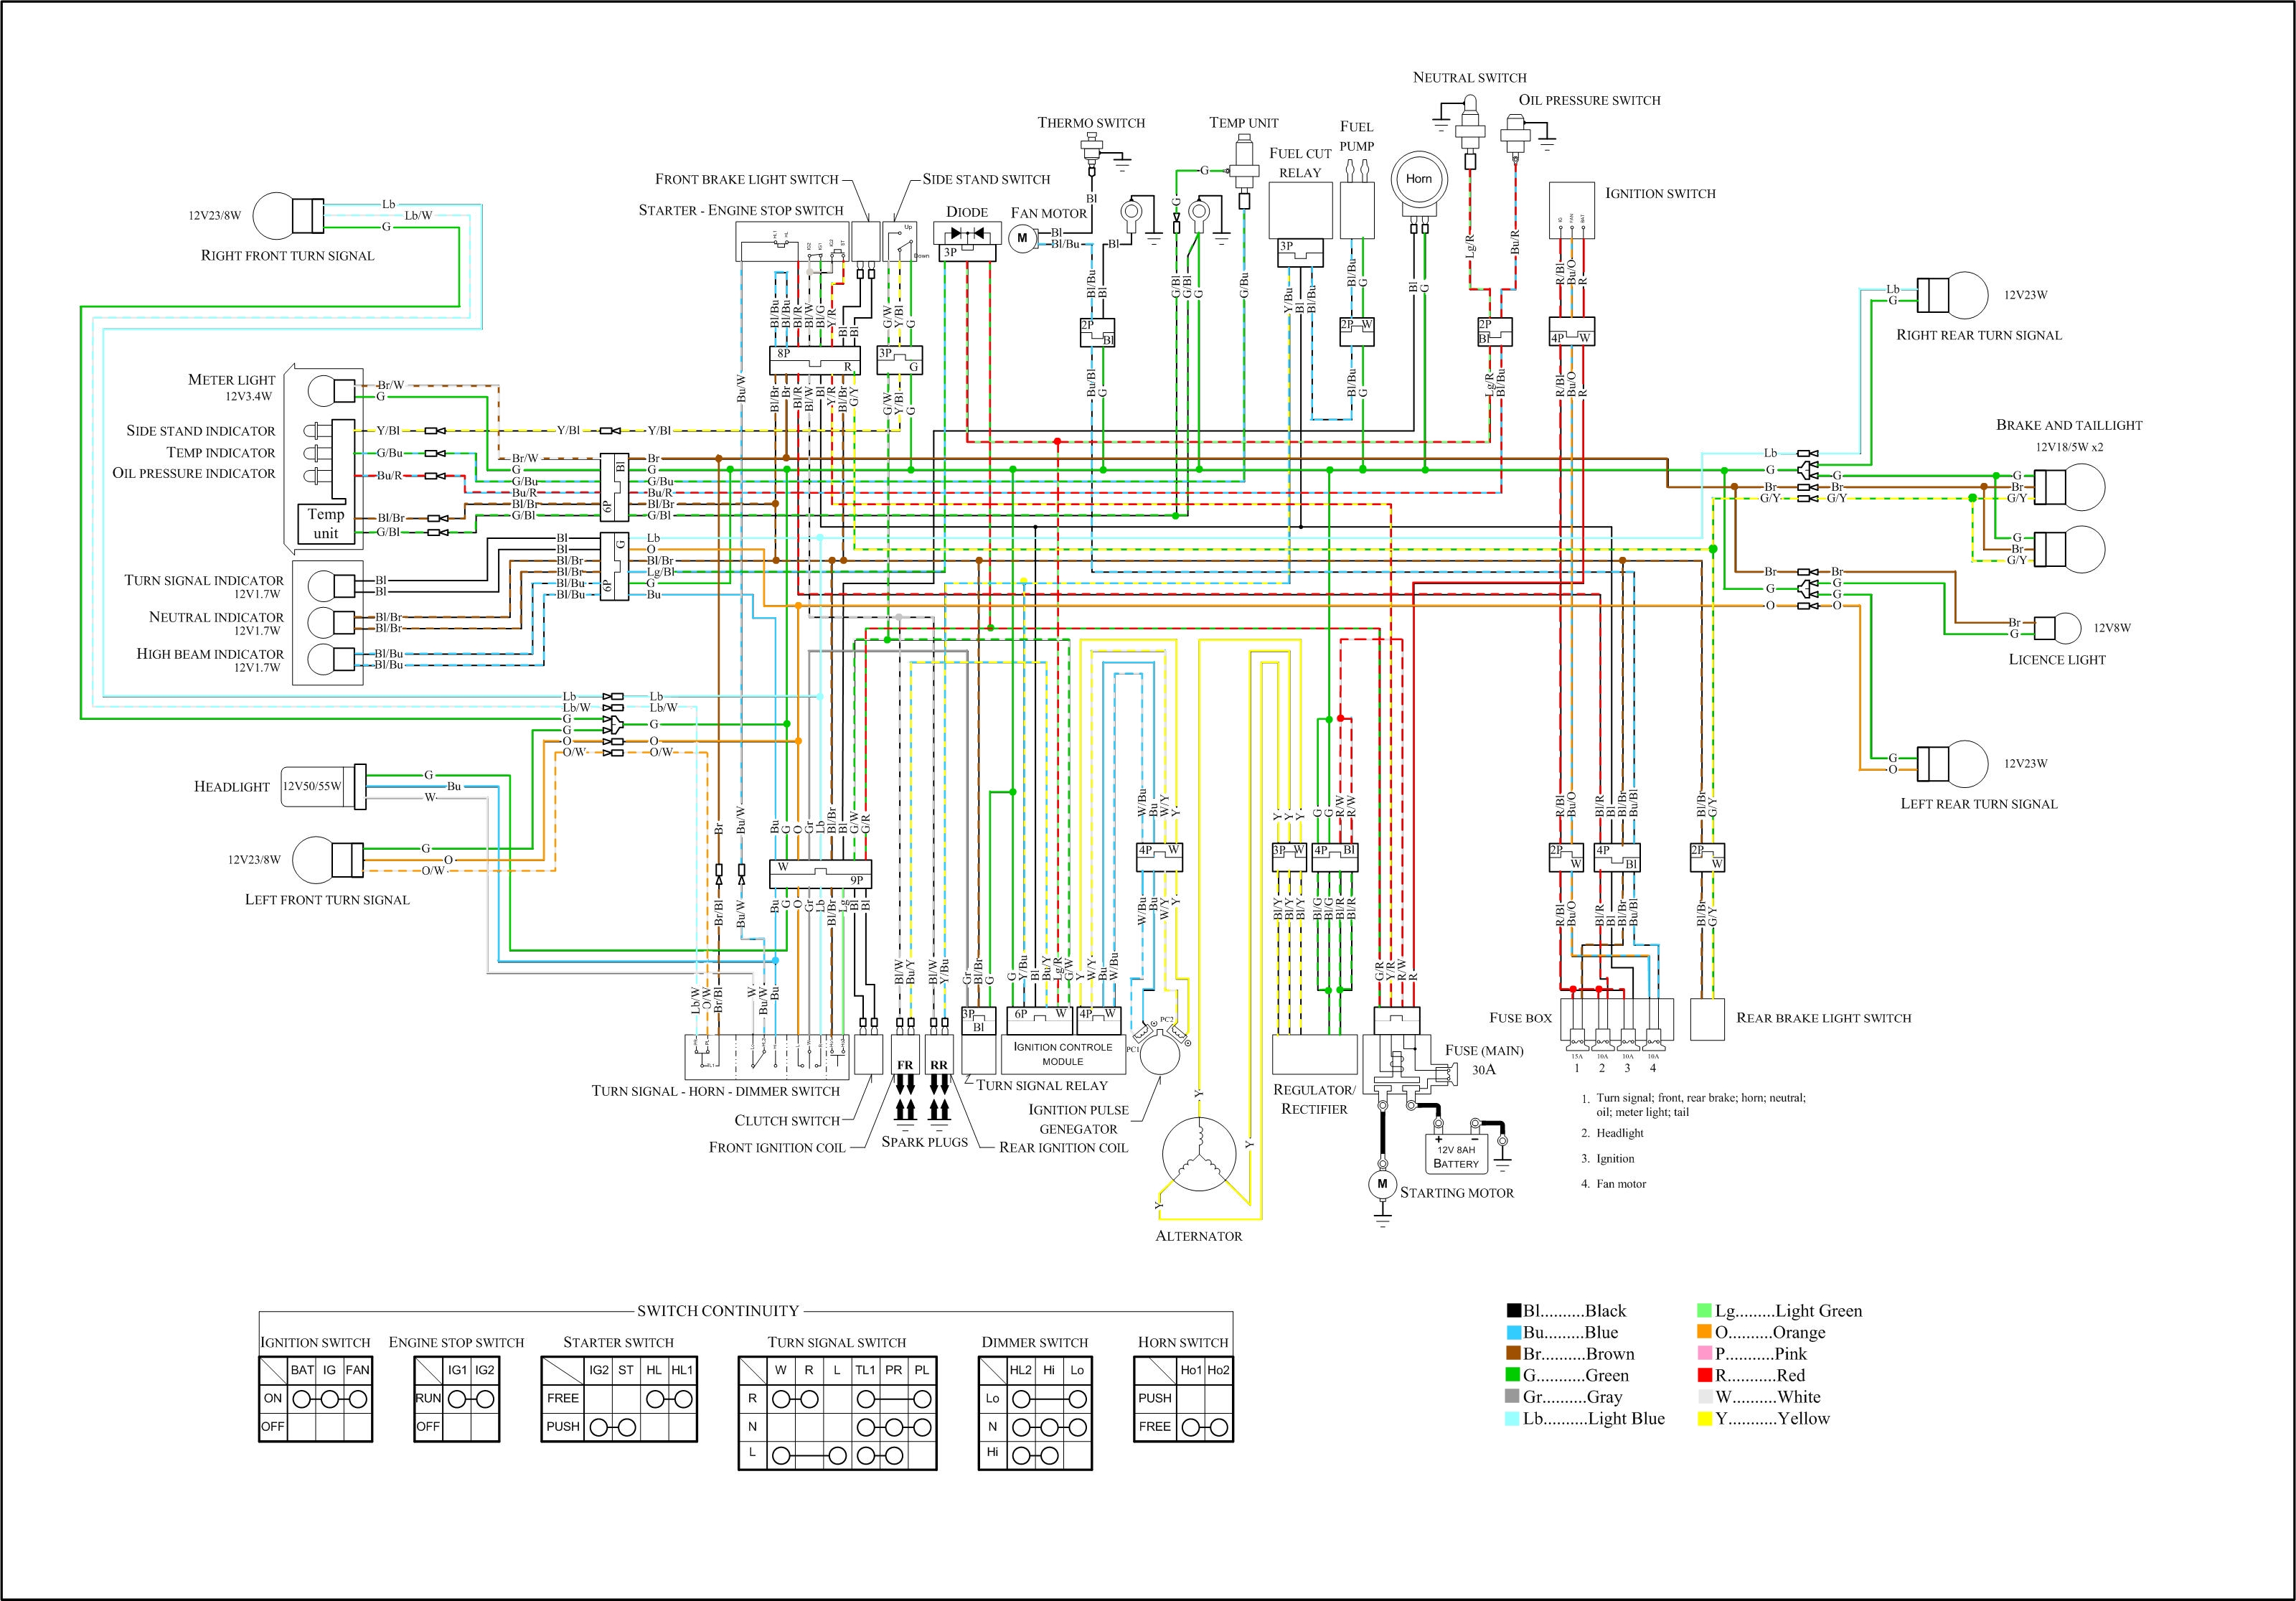 VT600wiring motorcycle wiring diagrams 2004 honda shadow 600 wiring diagram at alyssarenee.co